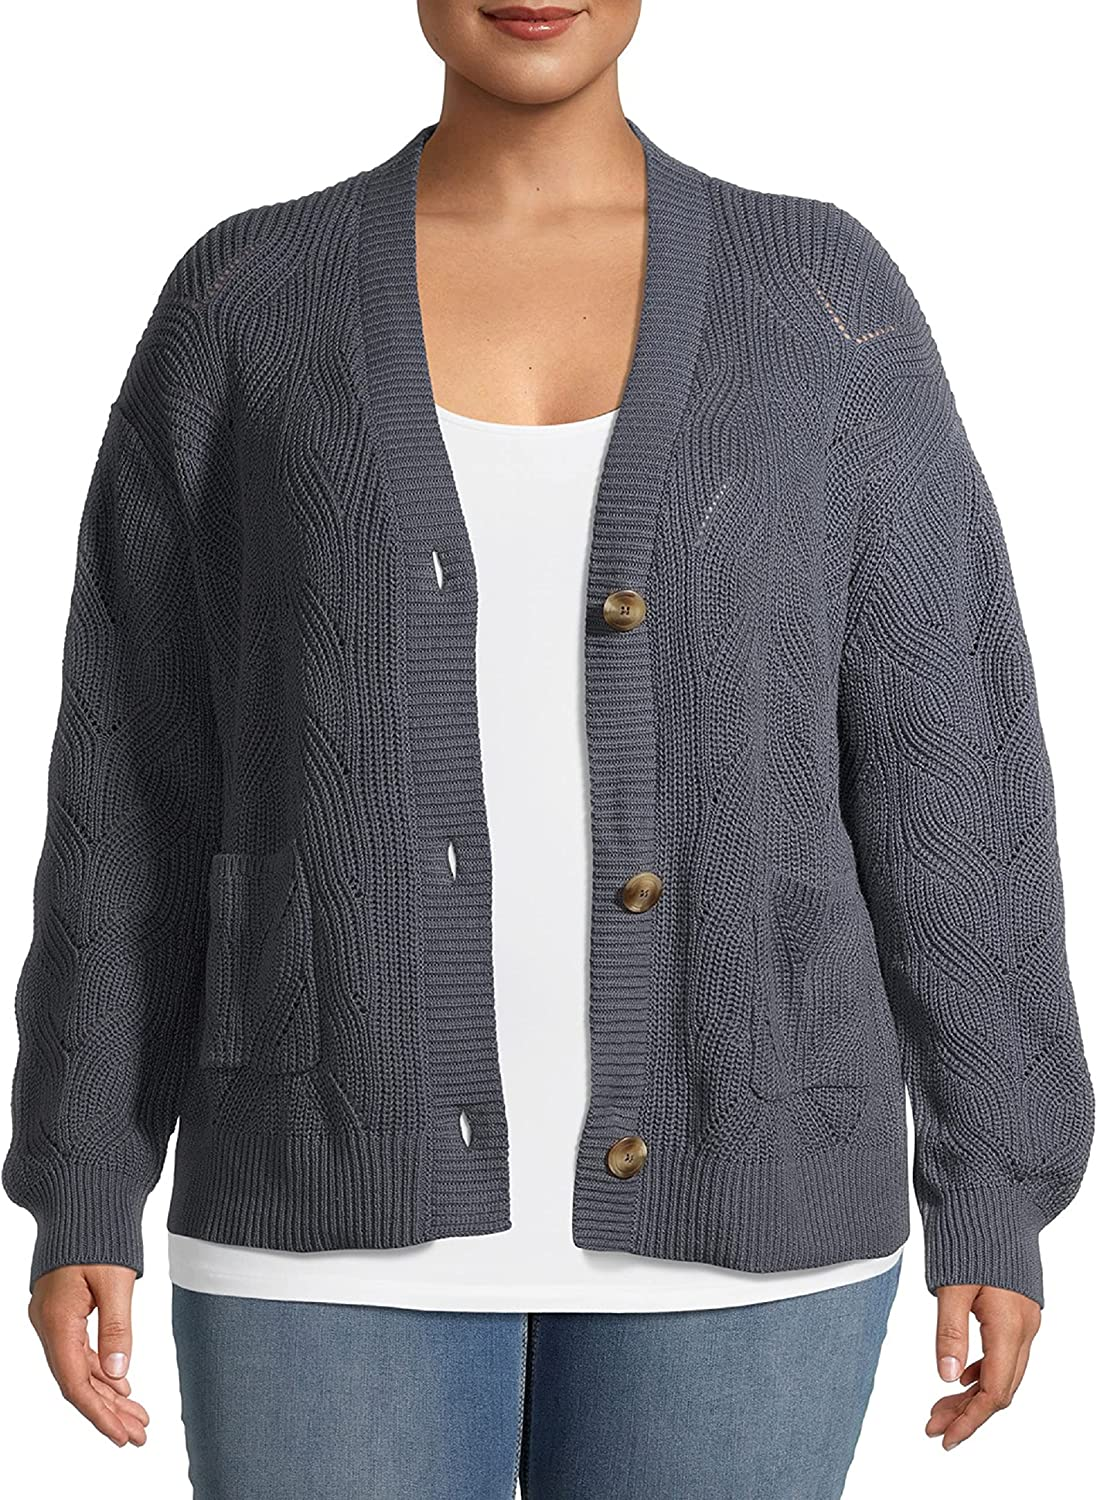 Terra & Sky Women's Plus Size Stitched Button-Front Cardigan 4X Grey